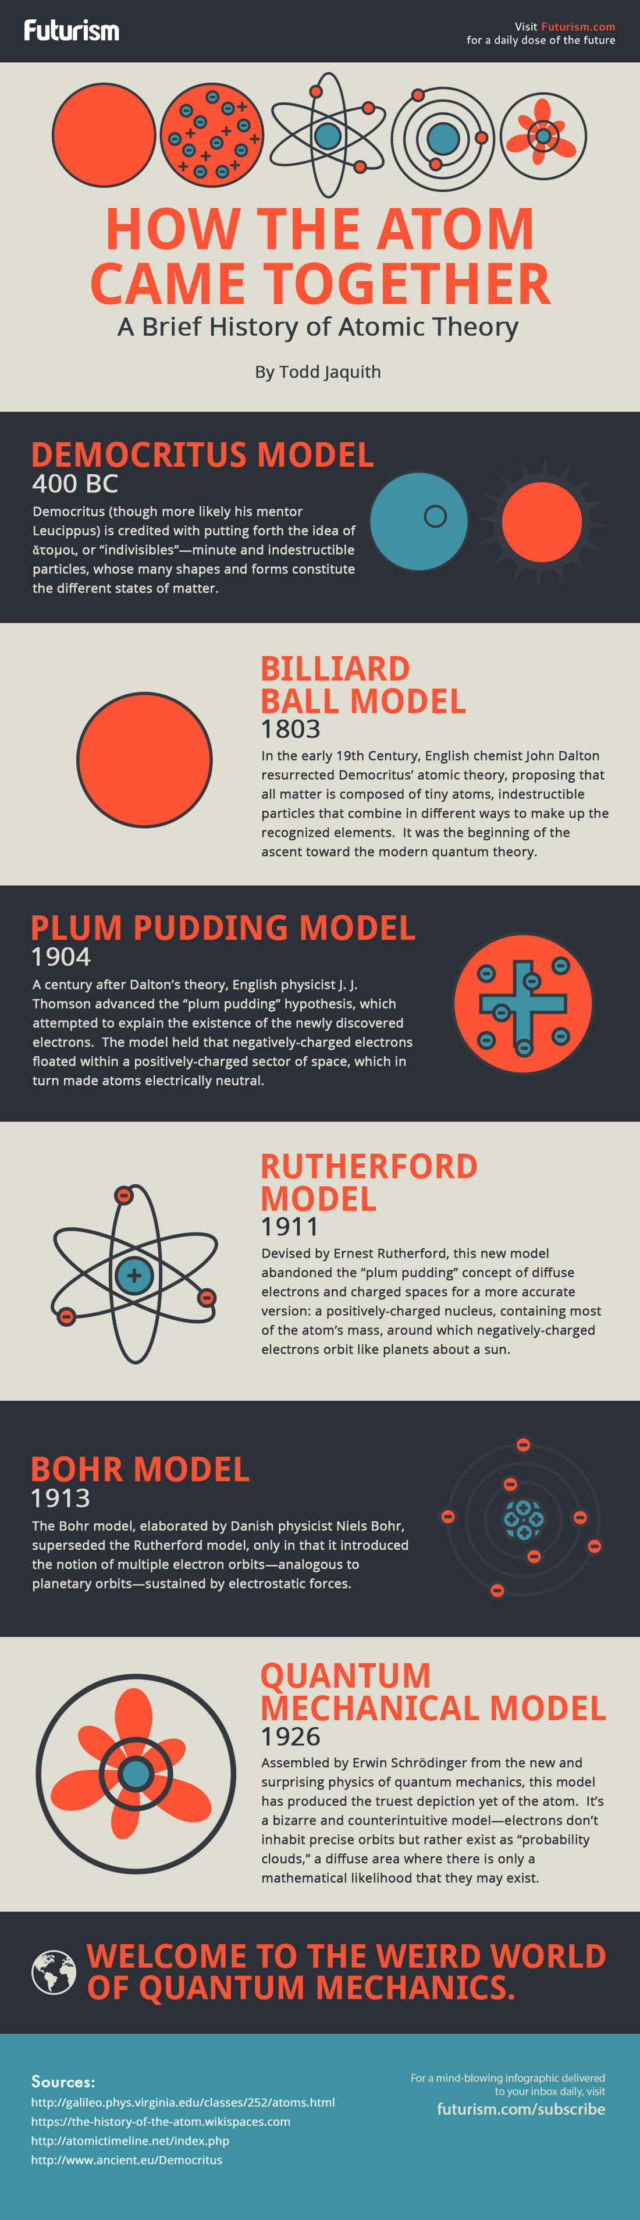 A history of theories on the atom